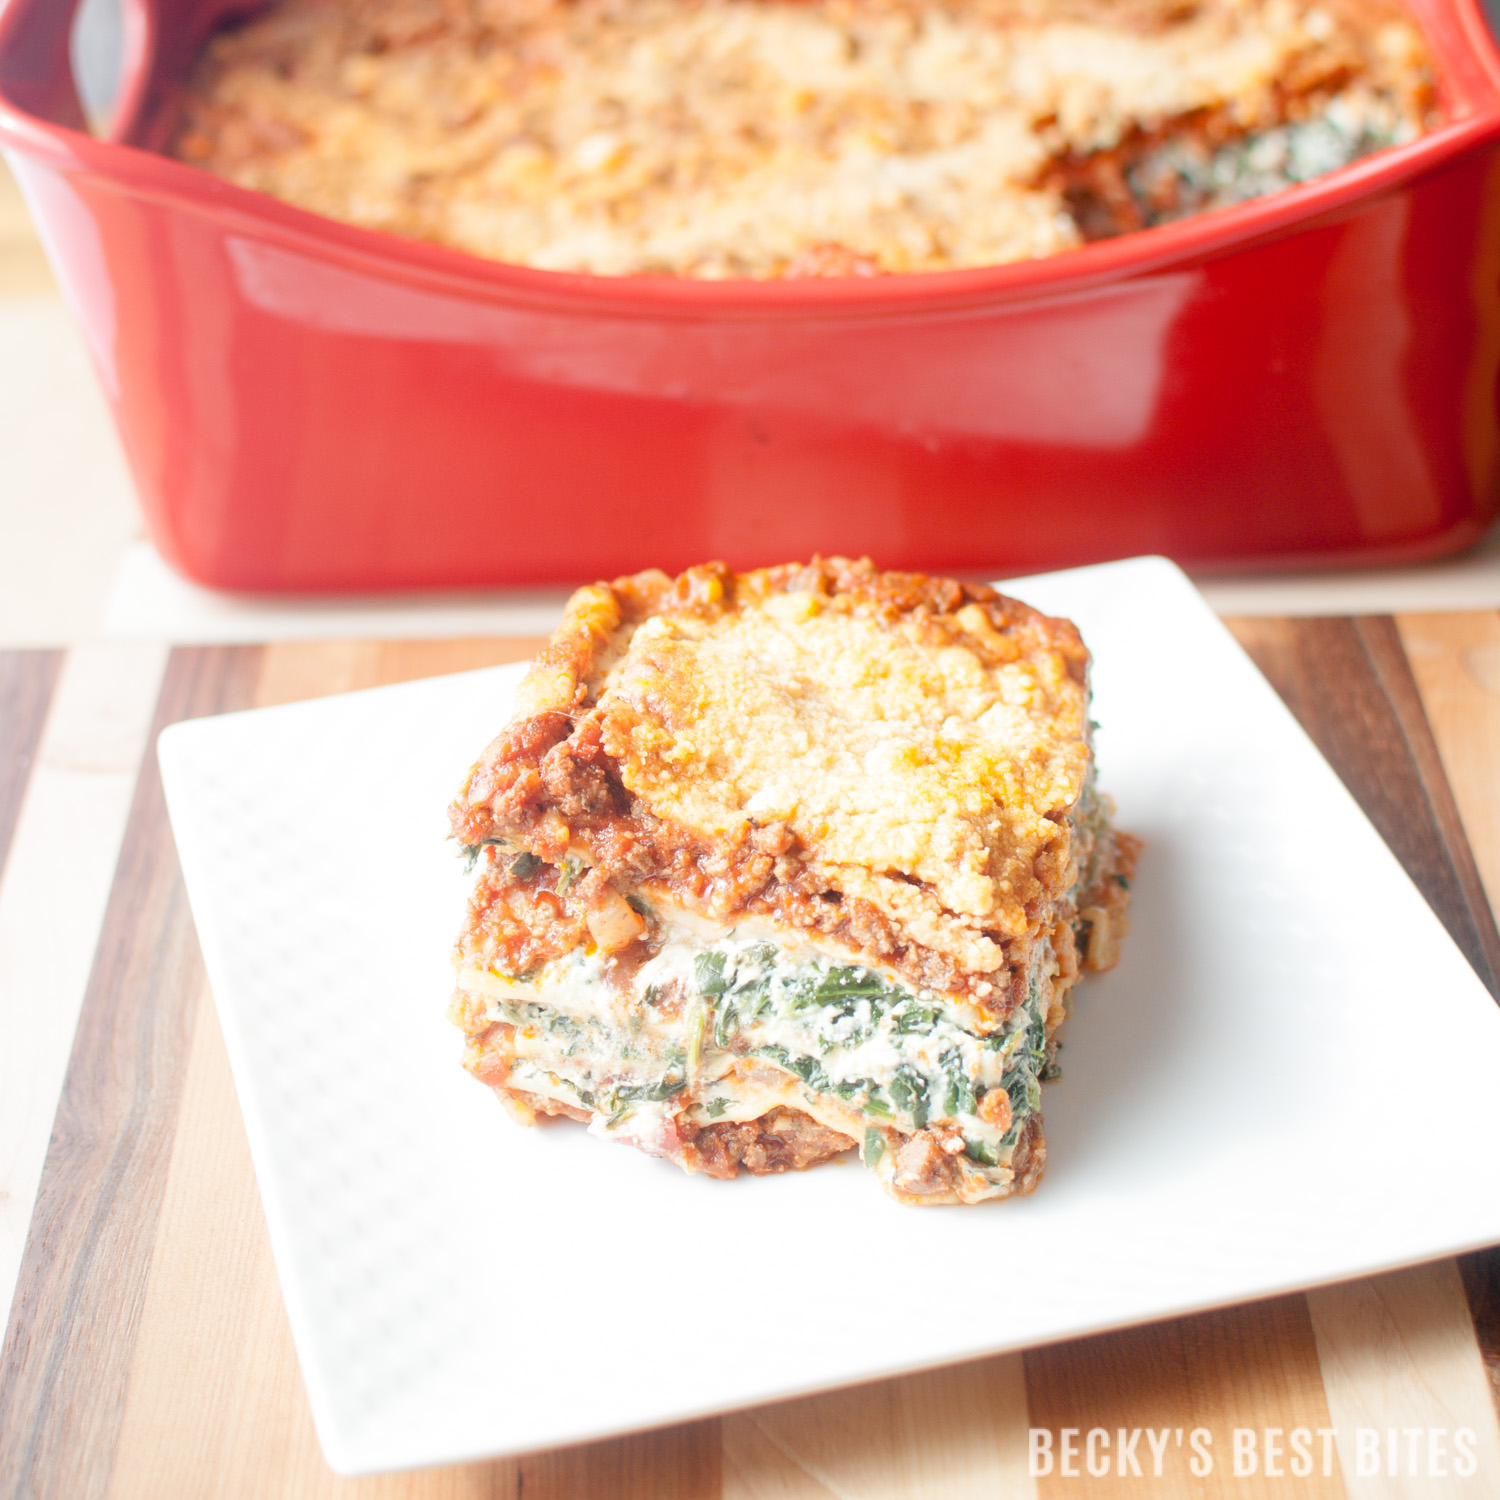 Meat & Veggie Lovers Family Lasagna is the perfect recipe to please a crowd! Ground beef and sausage pair beautifully with garlic, onion, tomatoes, bell peppers, spinach and 3 types of cheeses to make a delicious freezer friendly & make ahead meal that will be requested time and time again. | beckysbestbites.com